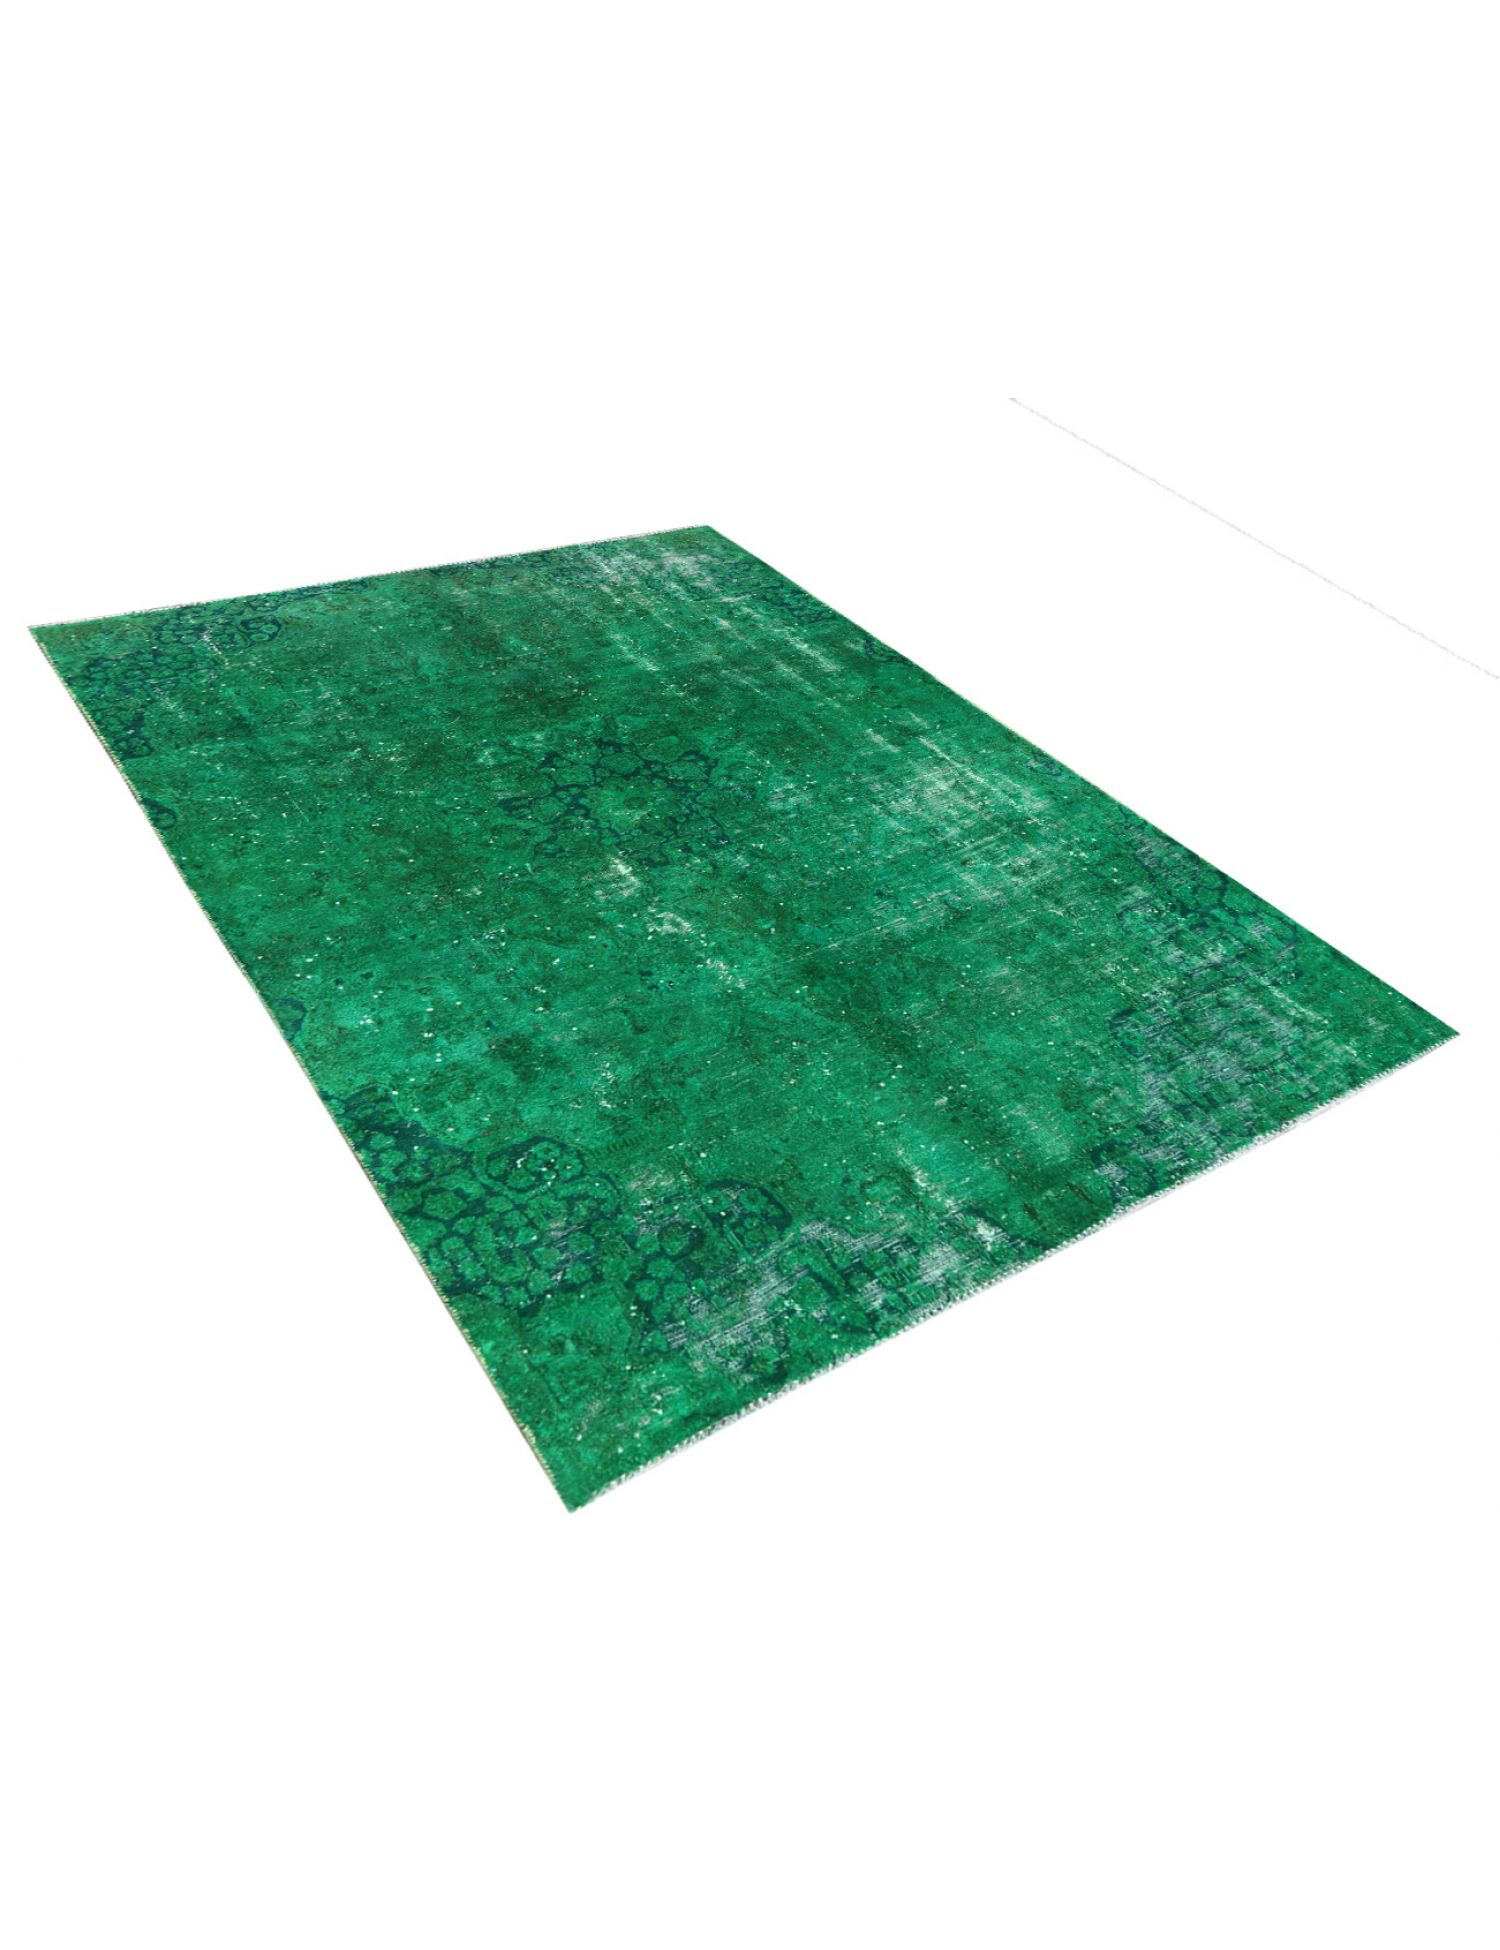 Vintage Carpet  green <br/>270 x 186 cm